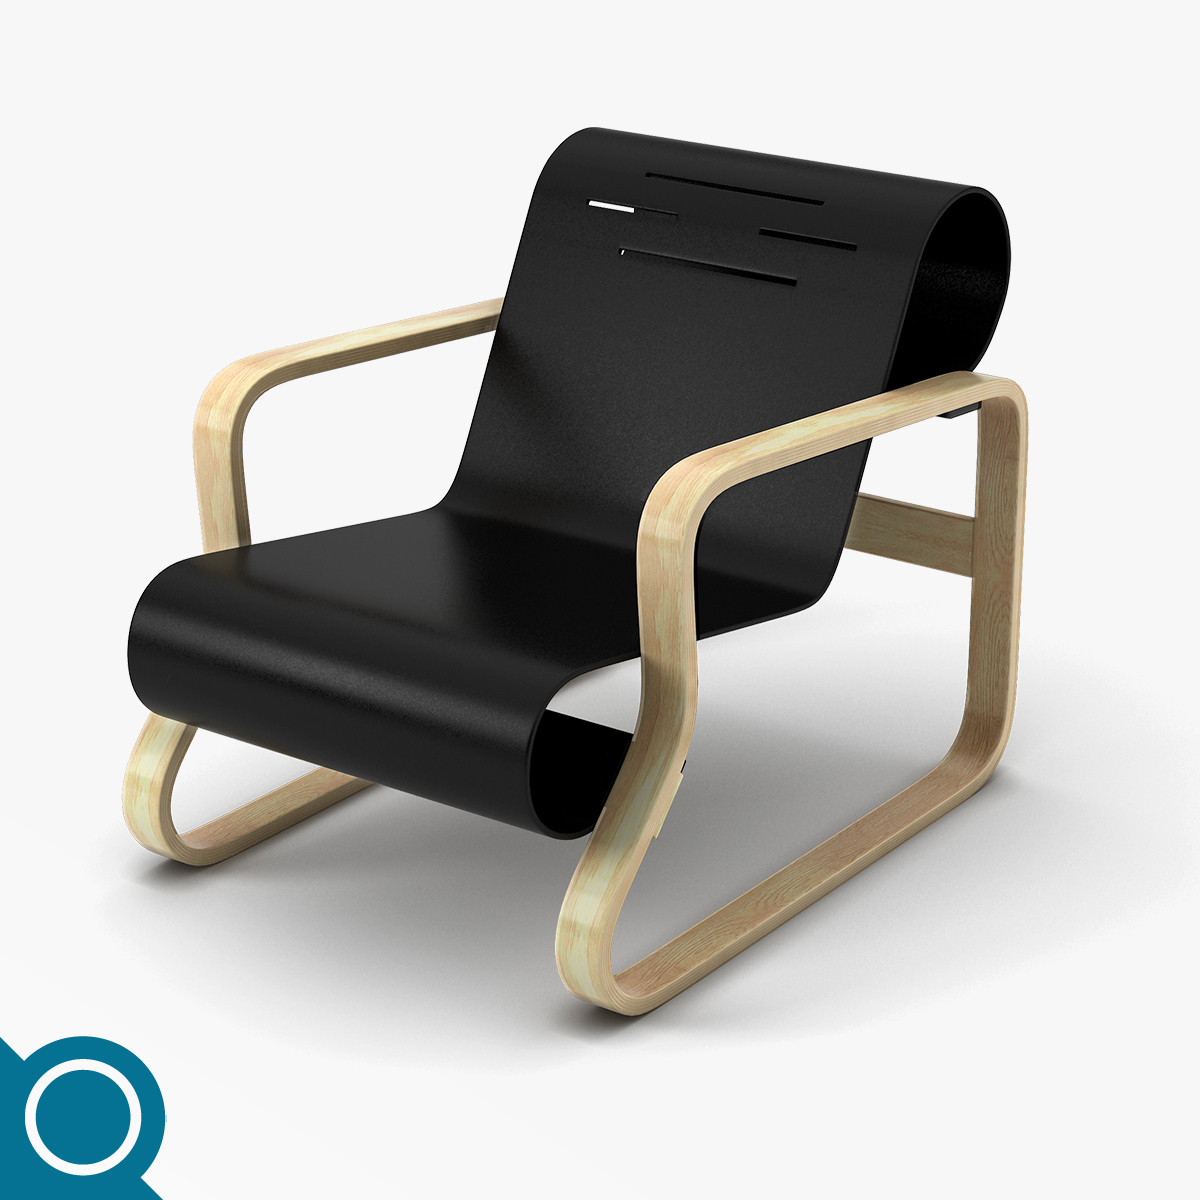 Swell Alvar Aalto 41 Lounge Chair Pabps2019 Chair Design Images Pabps2019Com